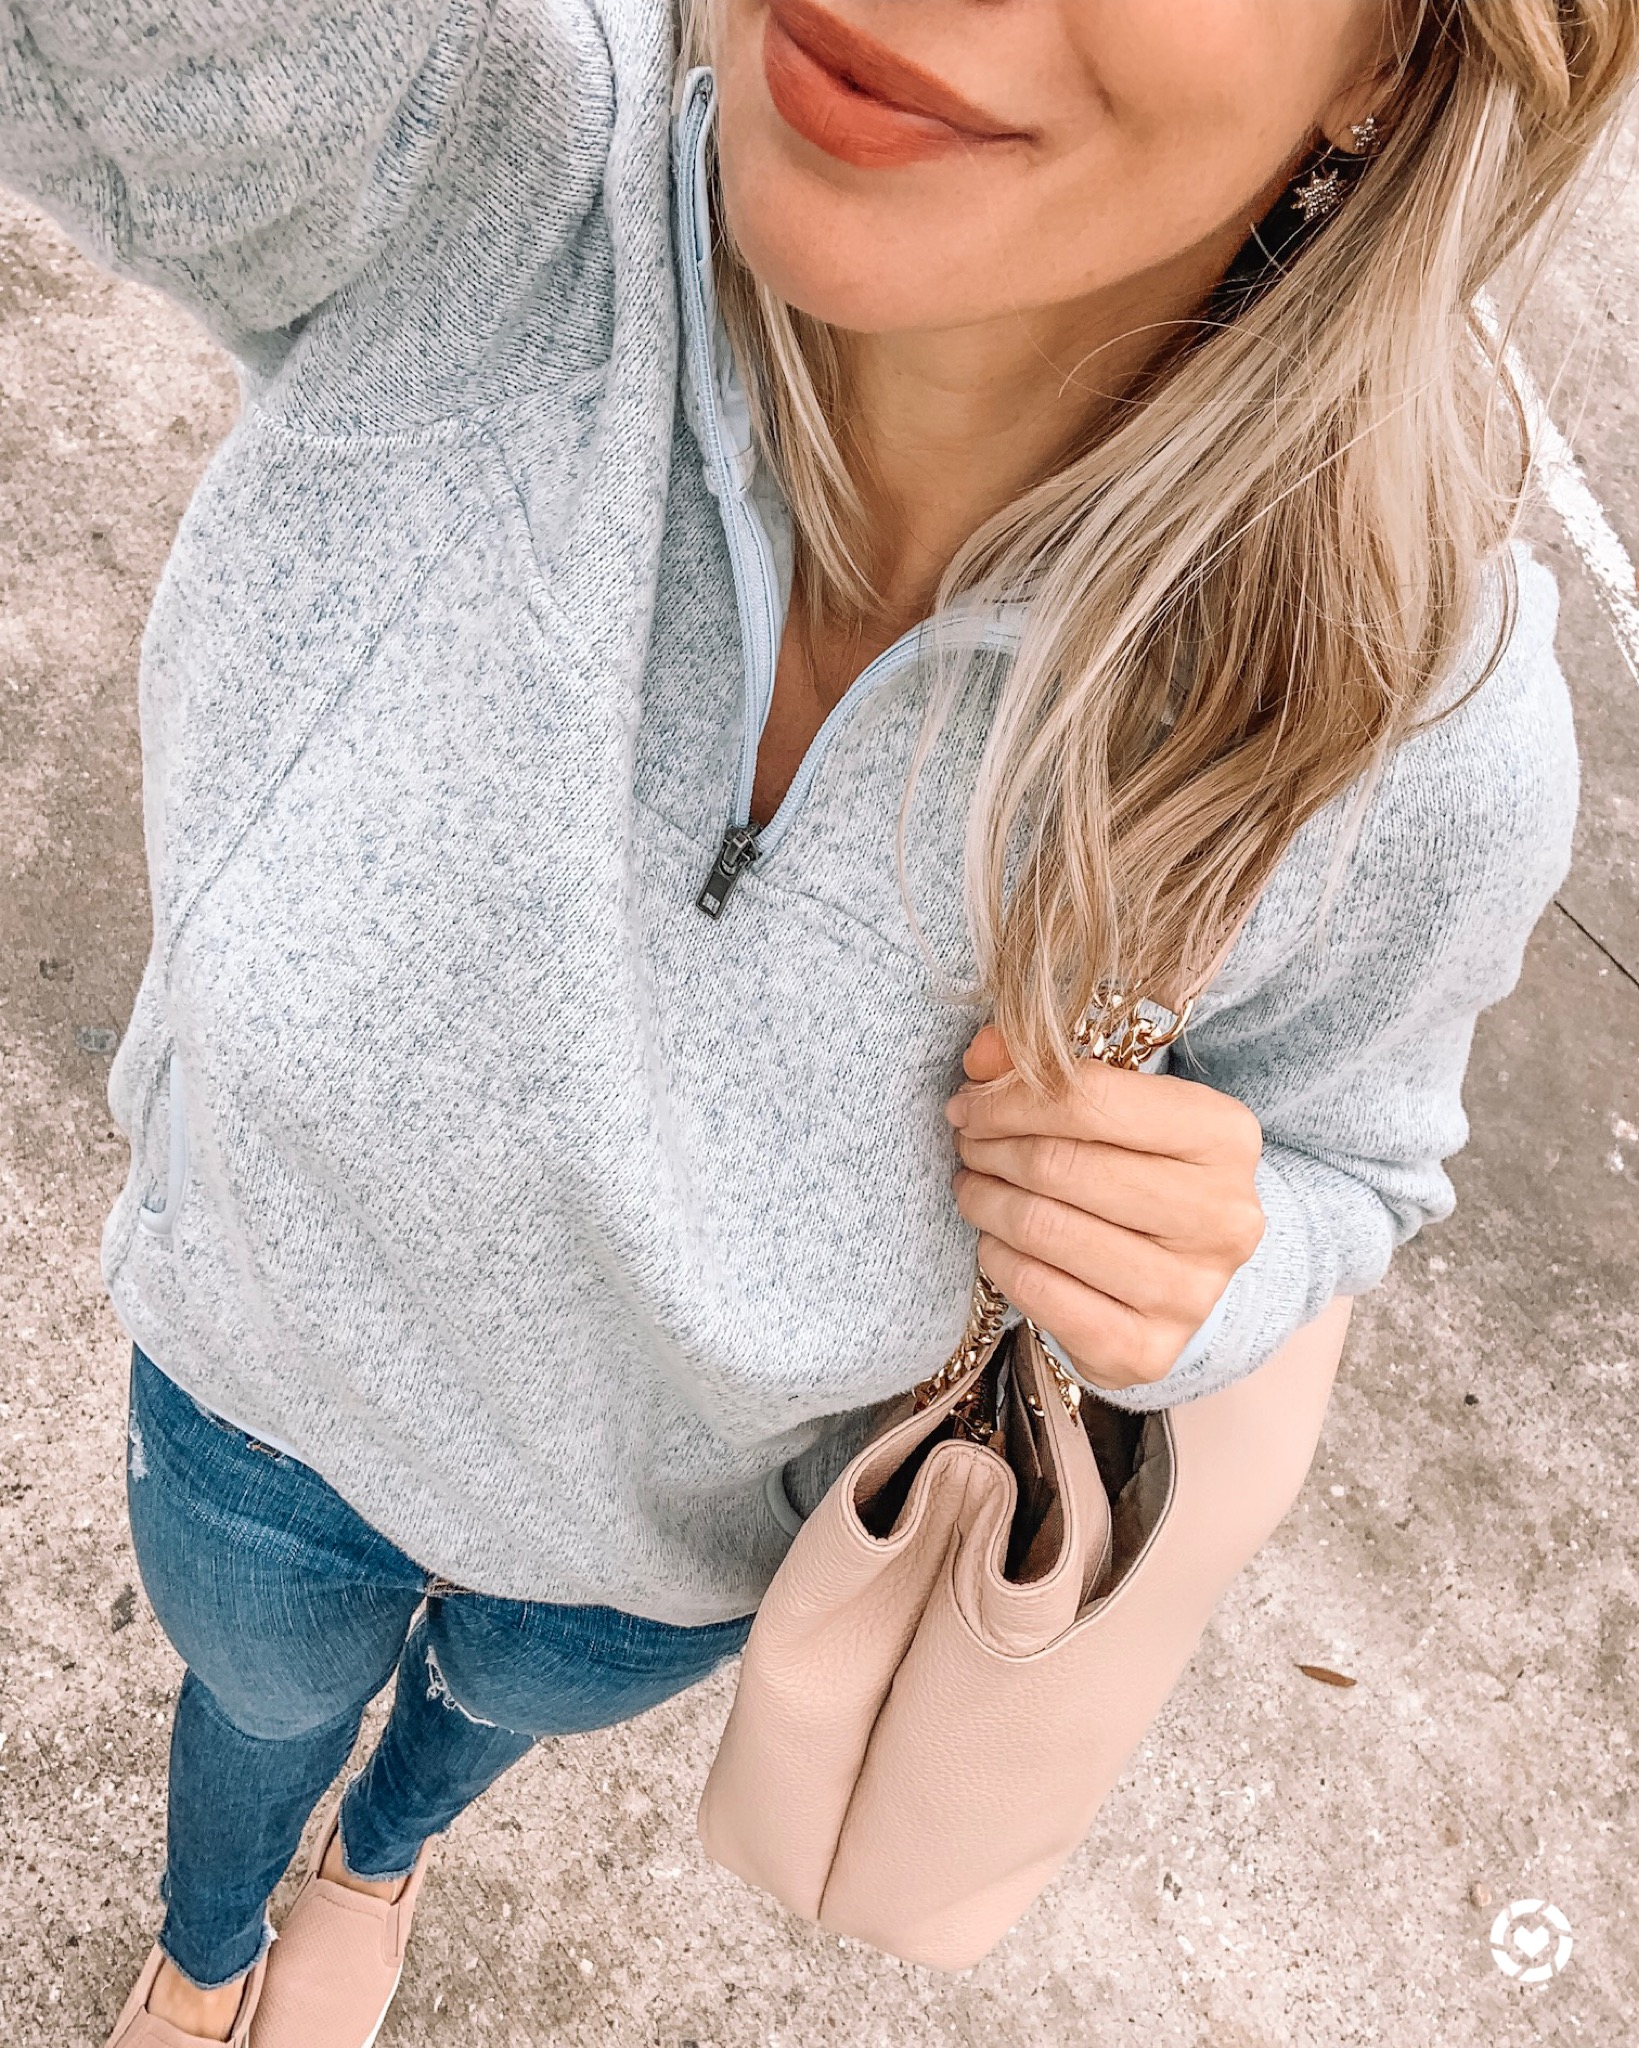 Zip pullover and jeans